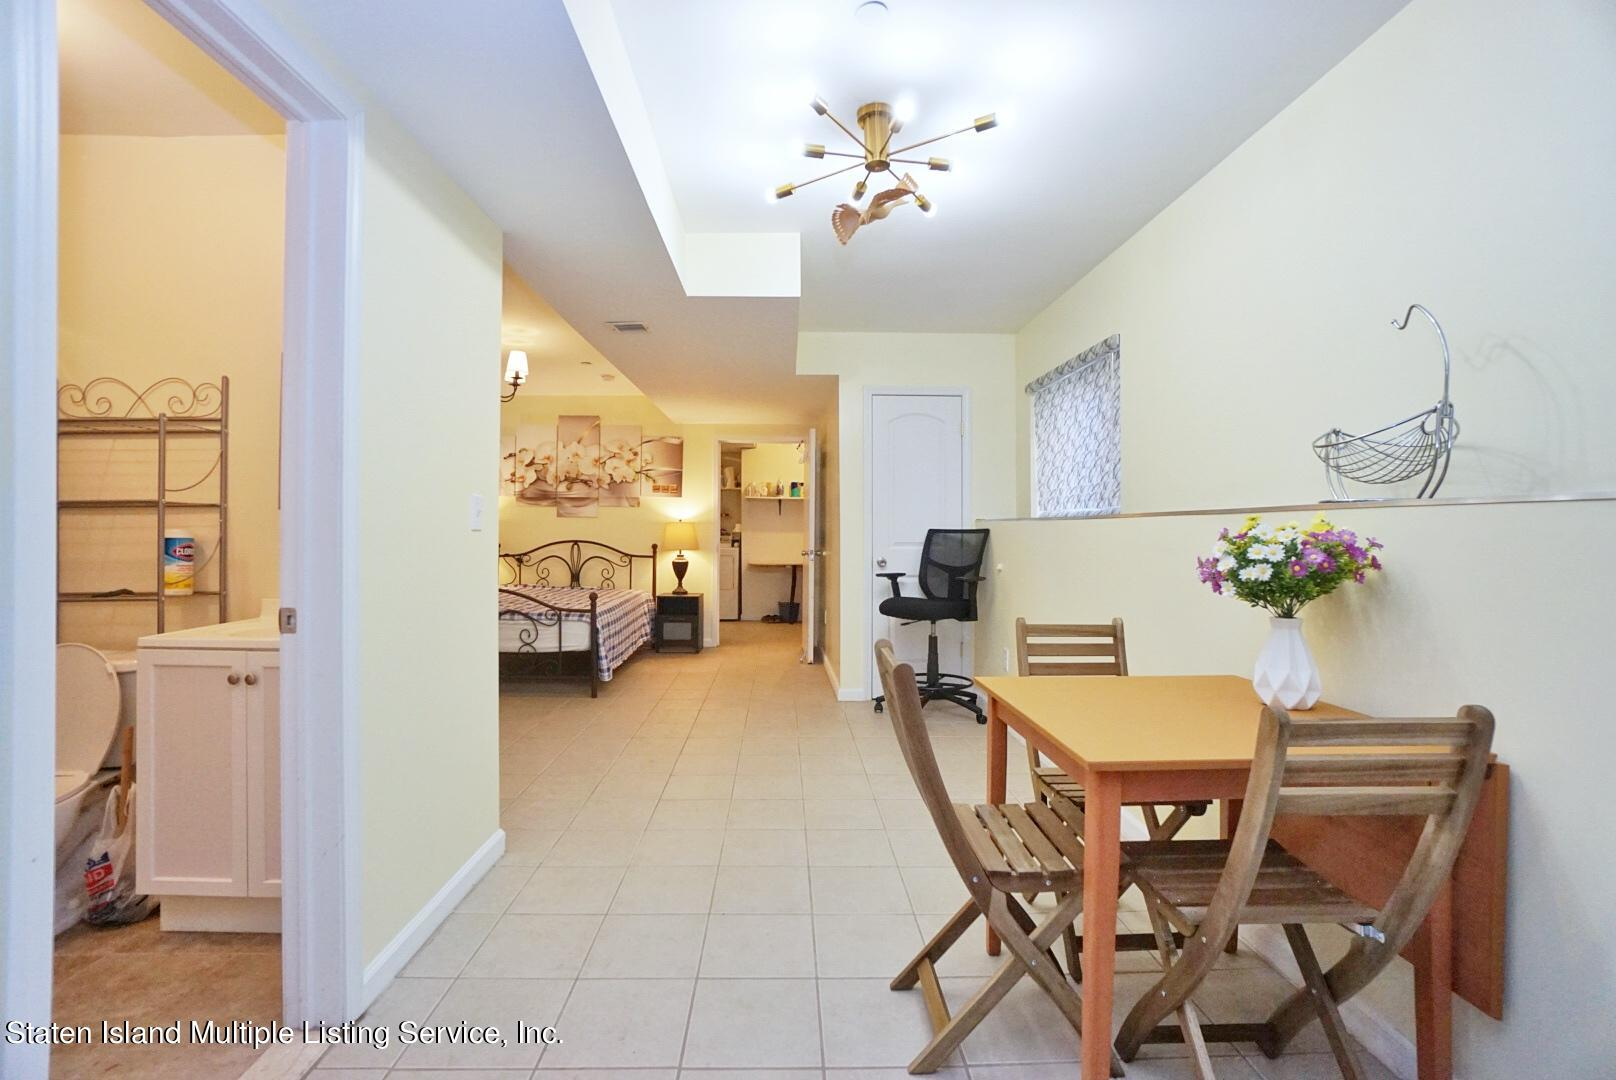 Single Family - Detached 171 Benziger Avenue  Staten Island, NY 10301, MLS-1145235-37